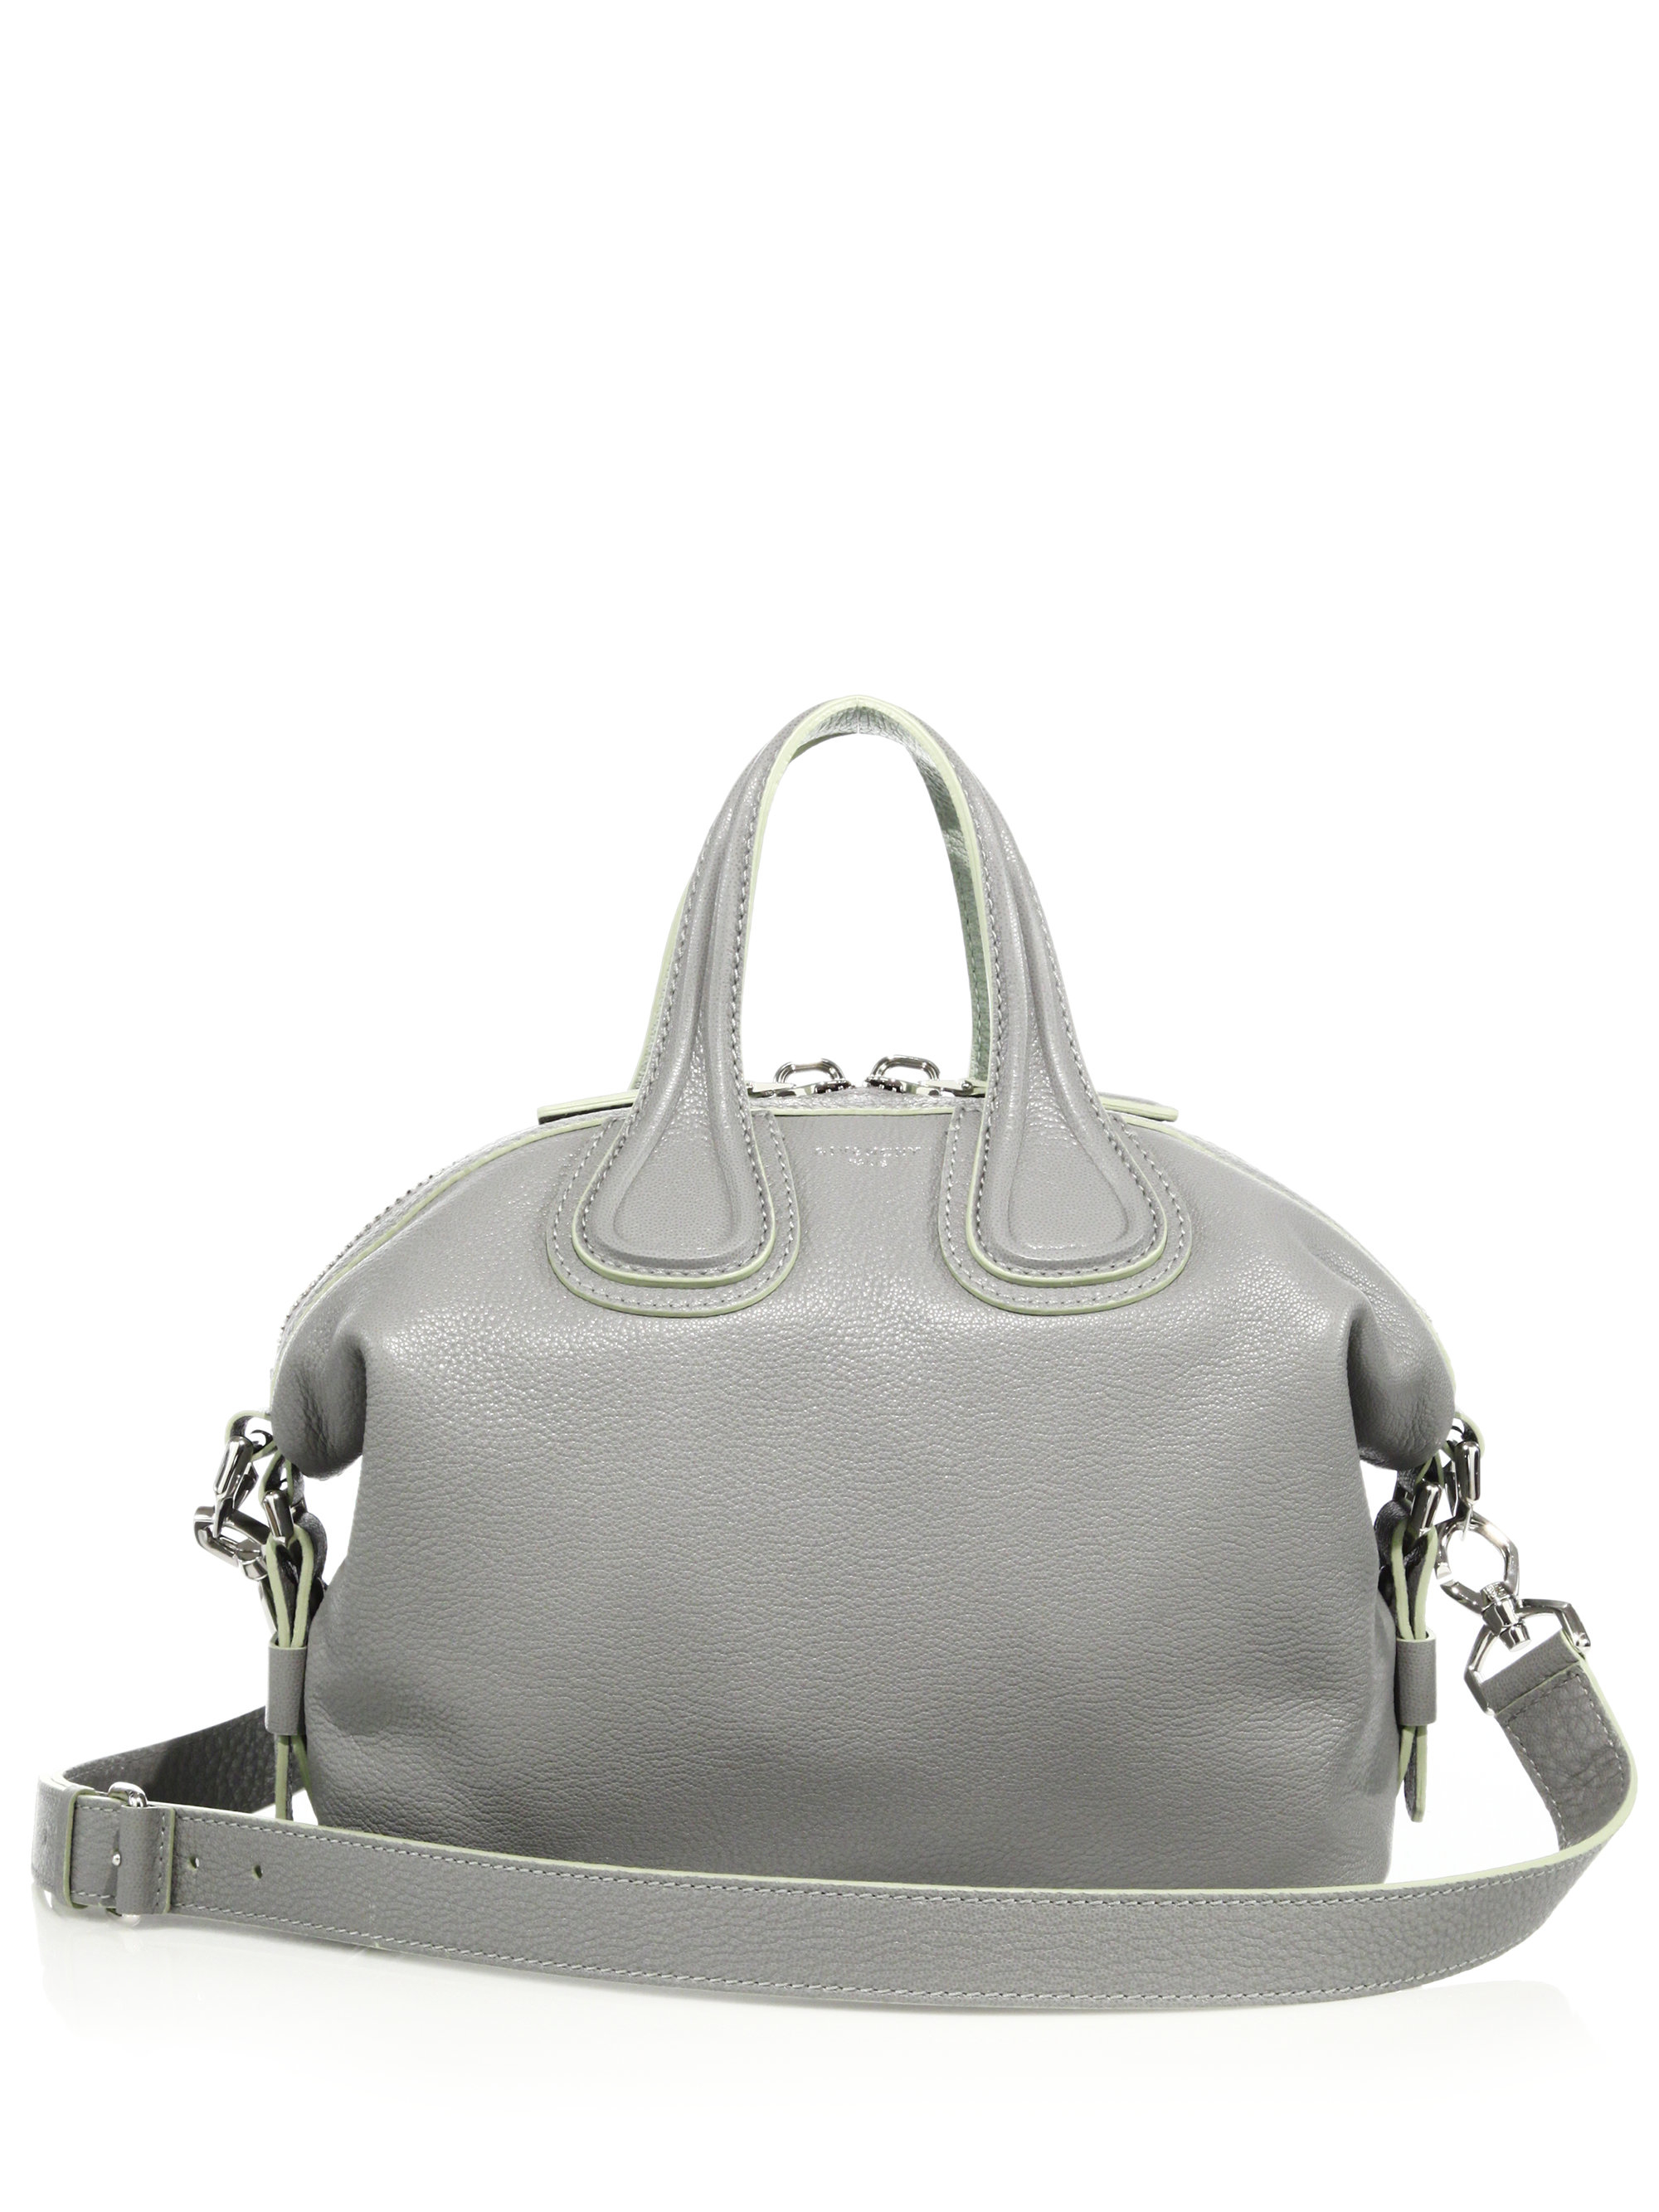 1bdd75062df3 Givenchy Nightingale Small Leather Satchel in Gray (pearl grey)